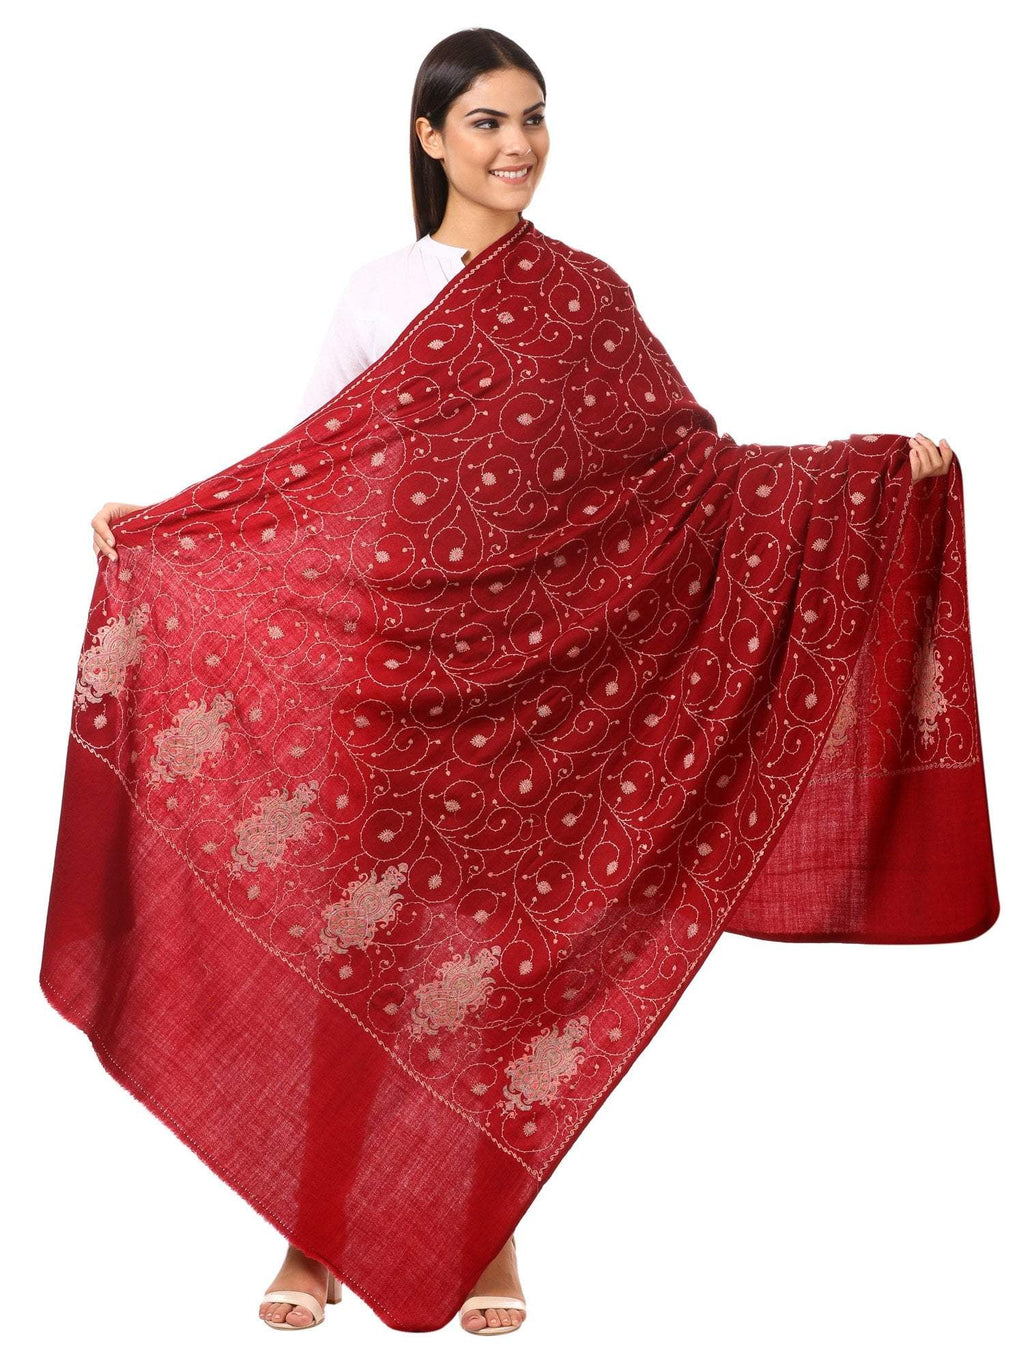 Pashtush Store Shawl Pashtush Womens Kashmiri Embroidery Shawl, Jaal Design, Silk Thread Needlework